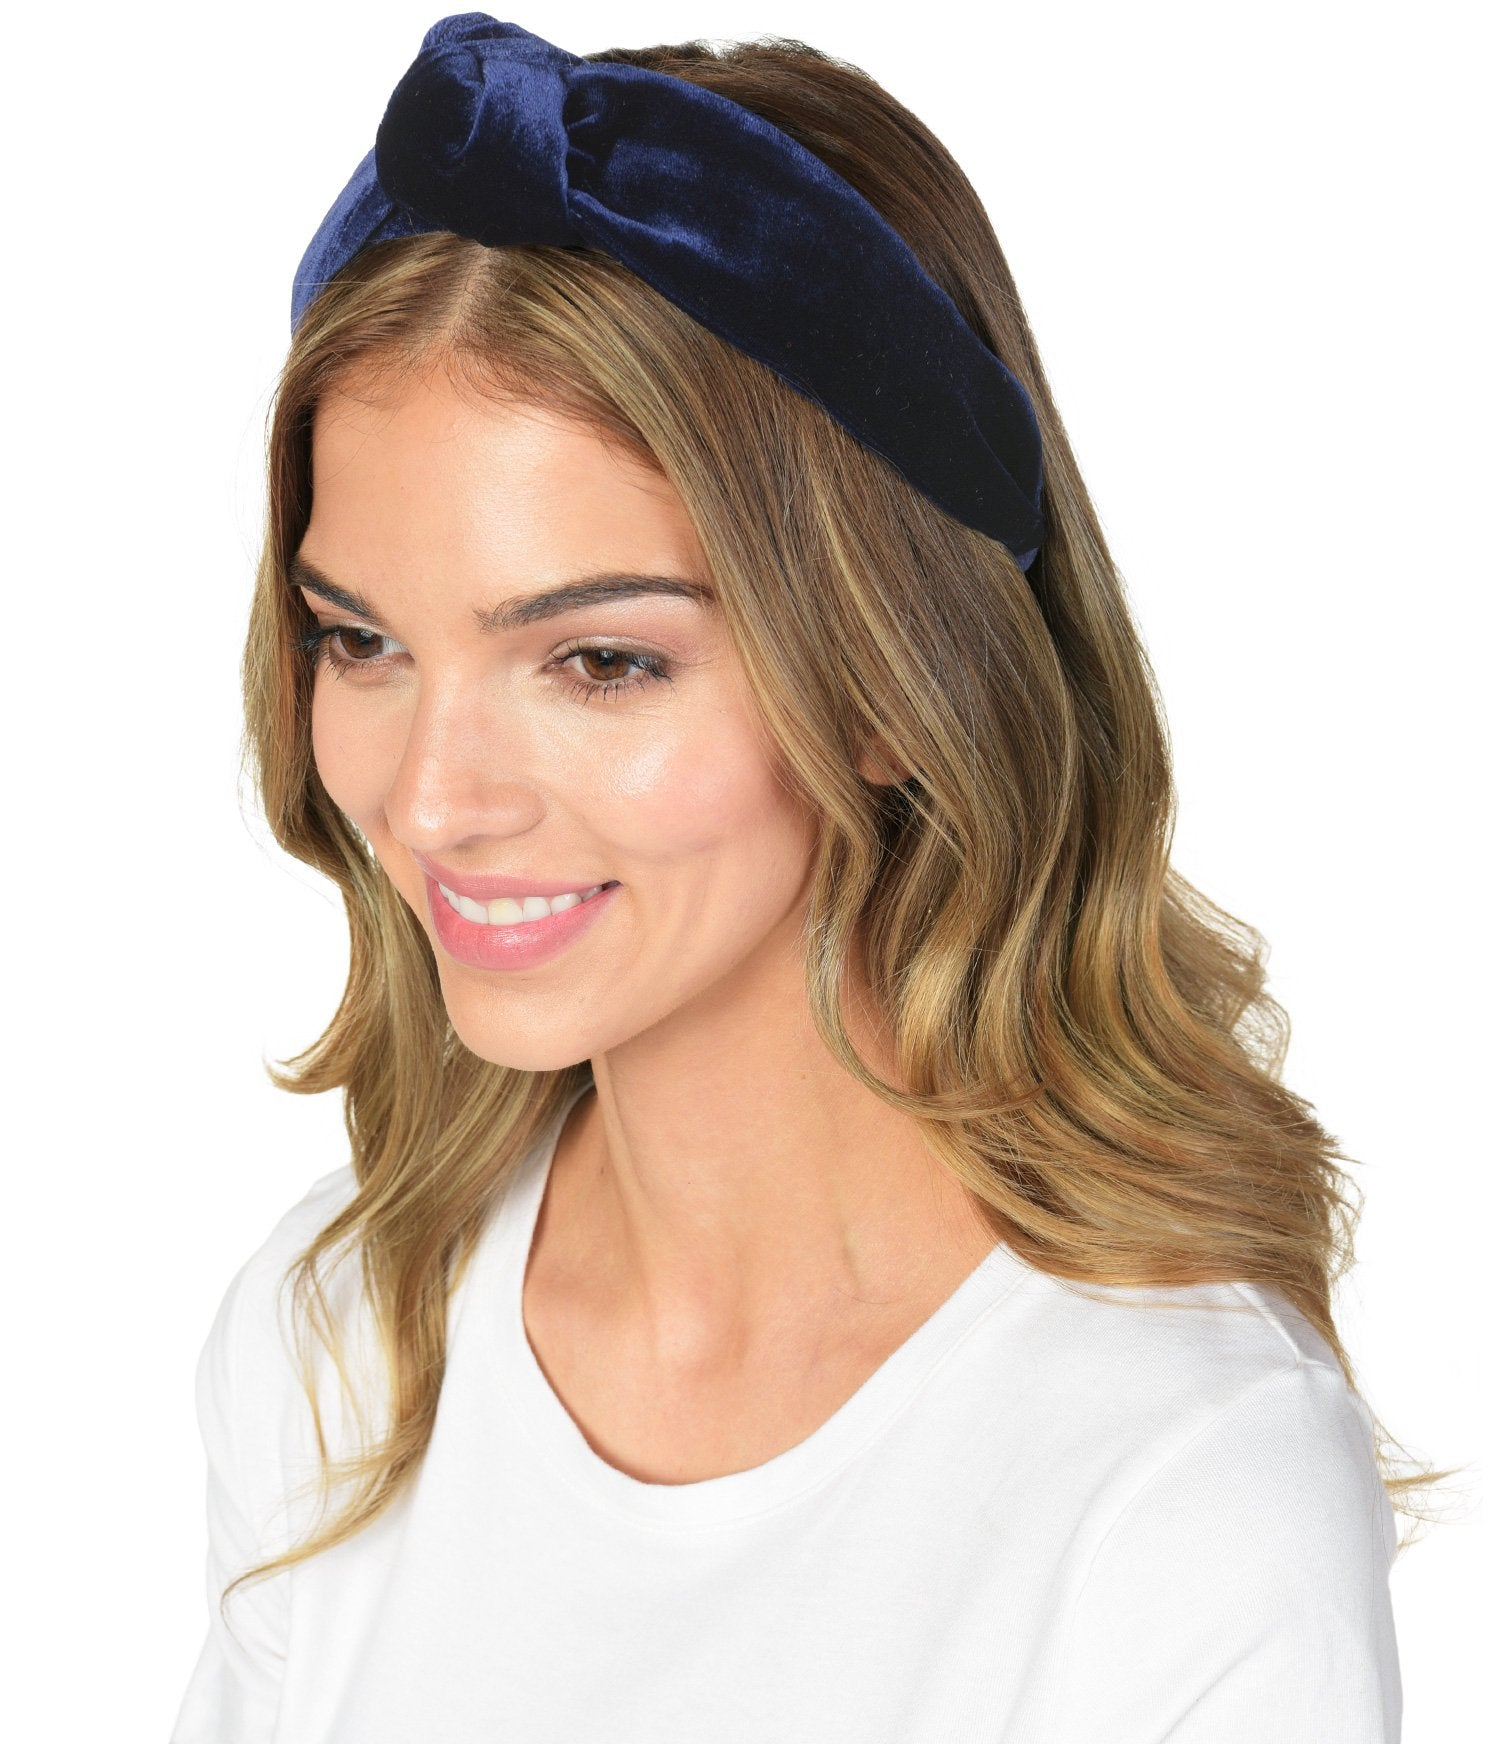 NAVY INK VELVET KNOT HEADBAND